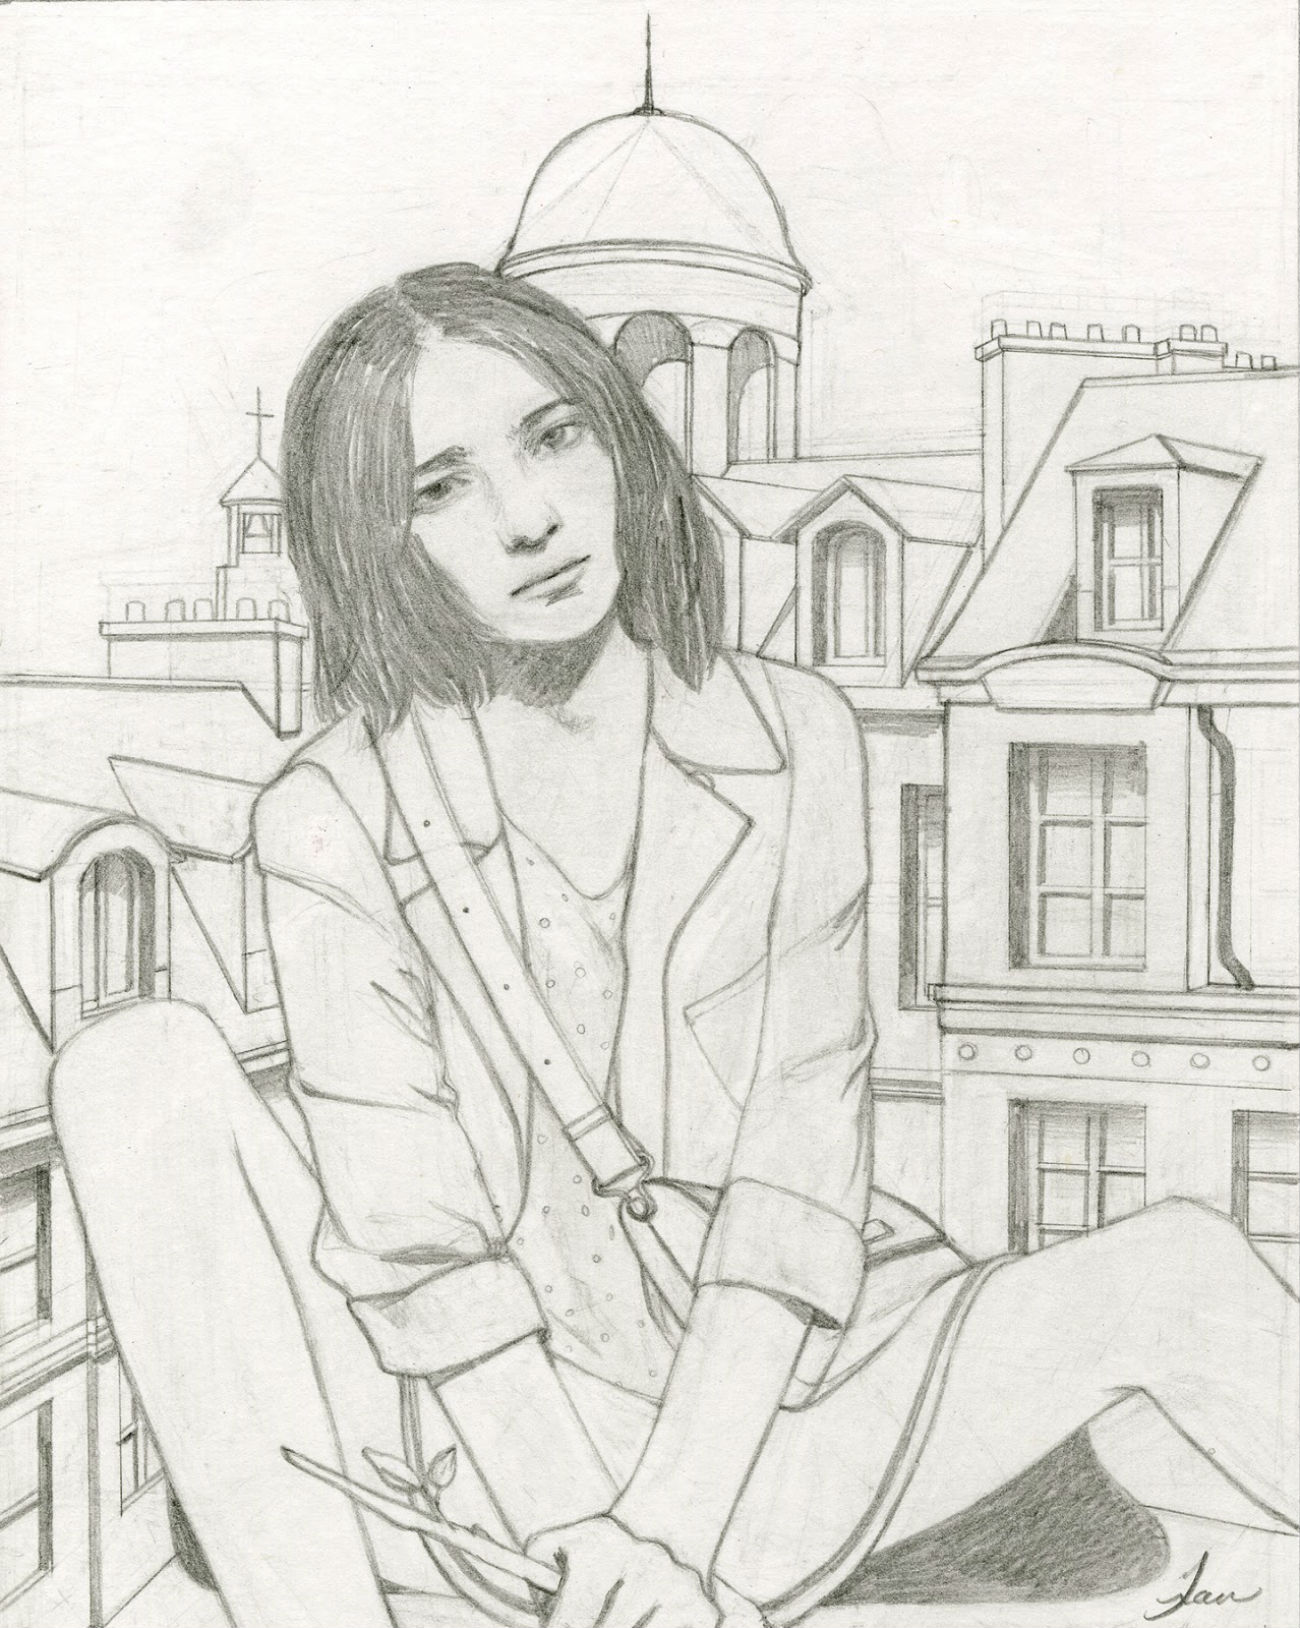 tran nguyen original sketch drawing